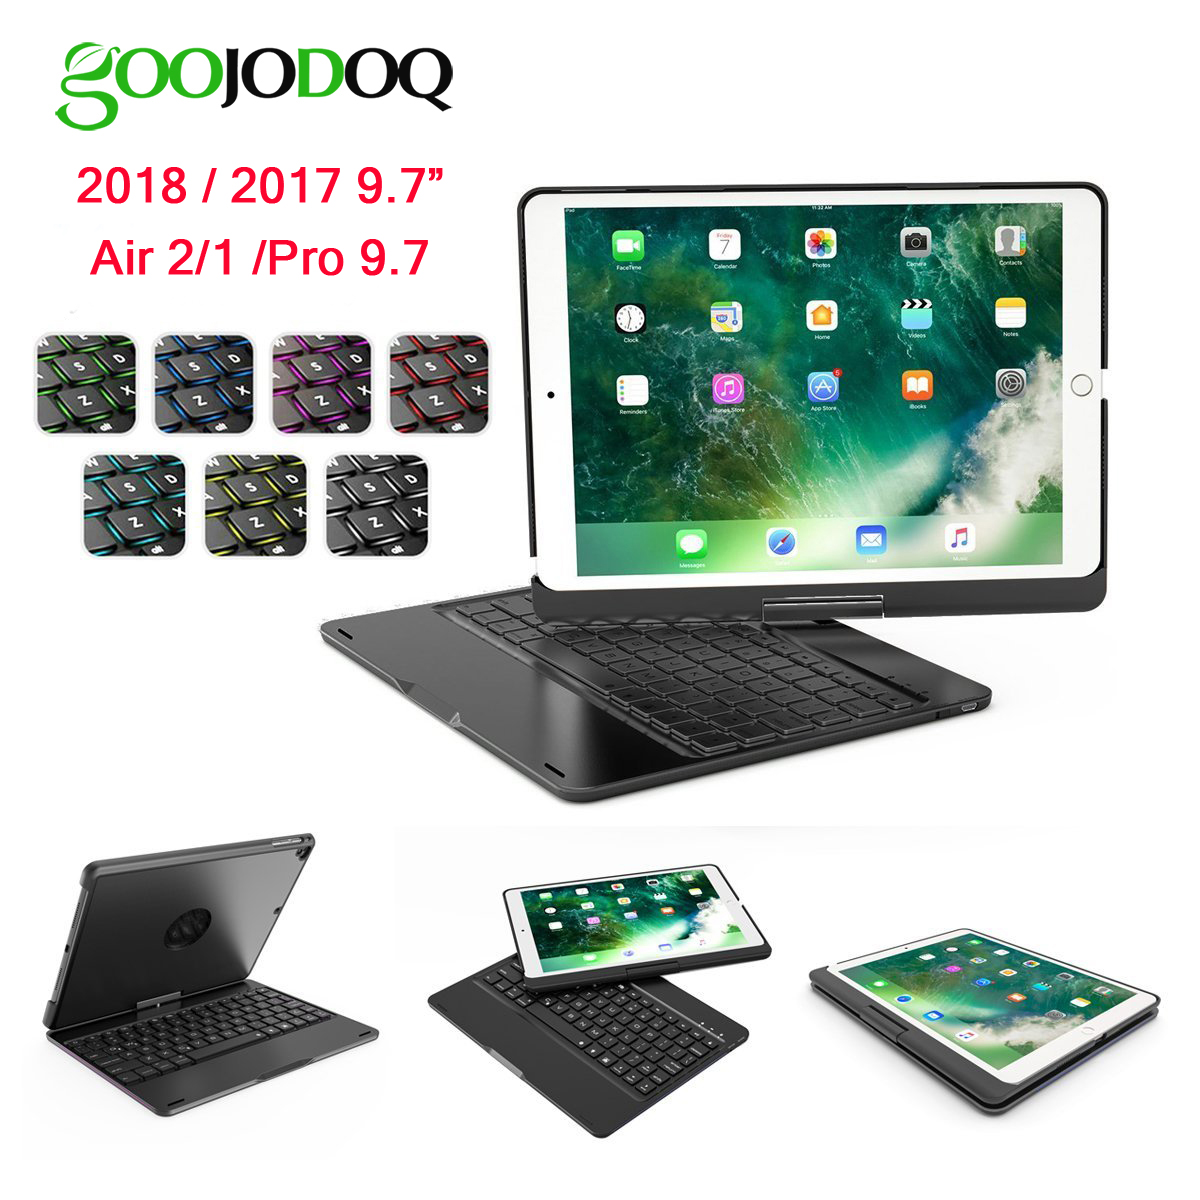 GOOJODOQ Backlit Wireless Bluetooth Keyboard Case for iPad 2018 9.7 2017 Pro 9.7 for iPad Air 2 / Air 1 Case Smart Folio Cover